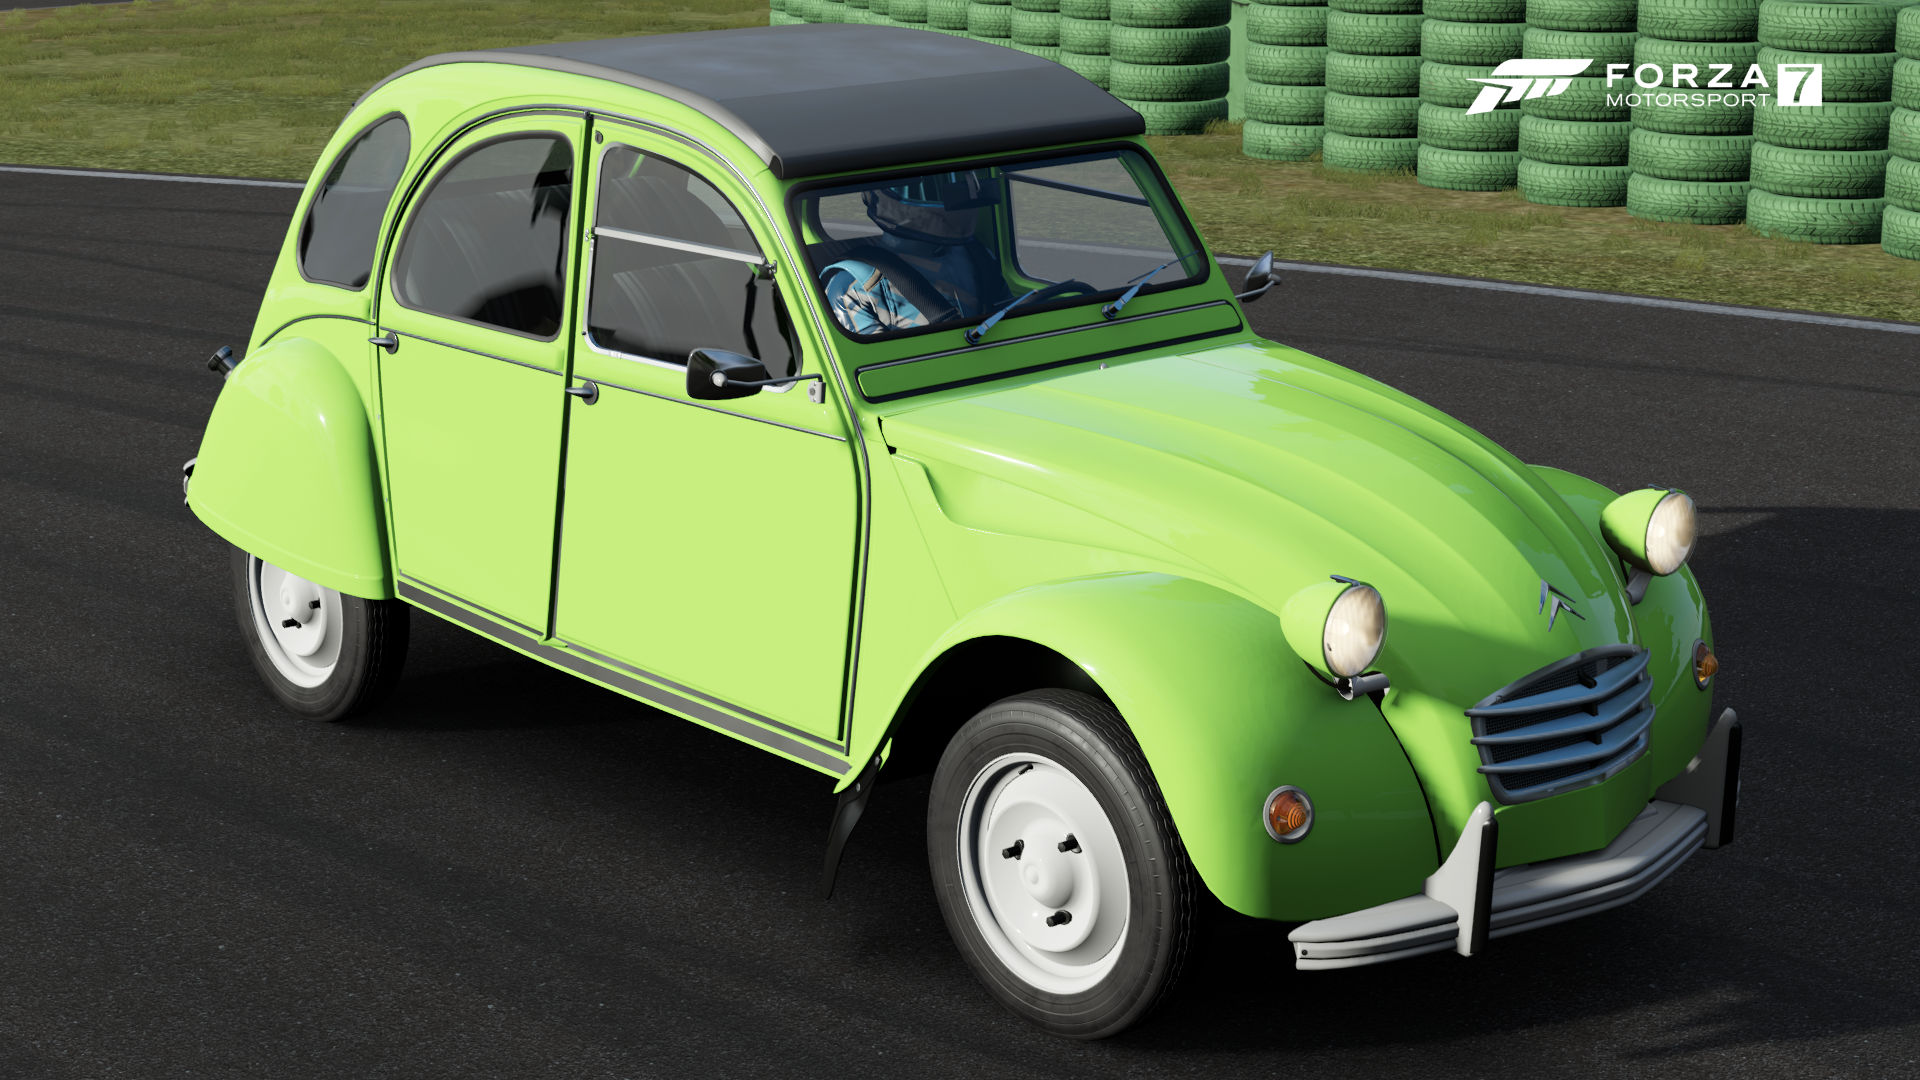 citro n 2cv forza motorsport wiki fandom powered by wikia. Black Bedroom Furniture Sets. Home Design Ideas